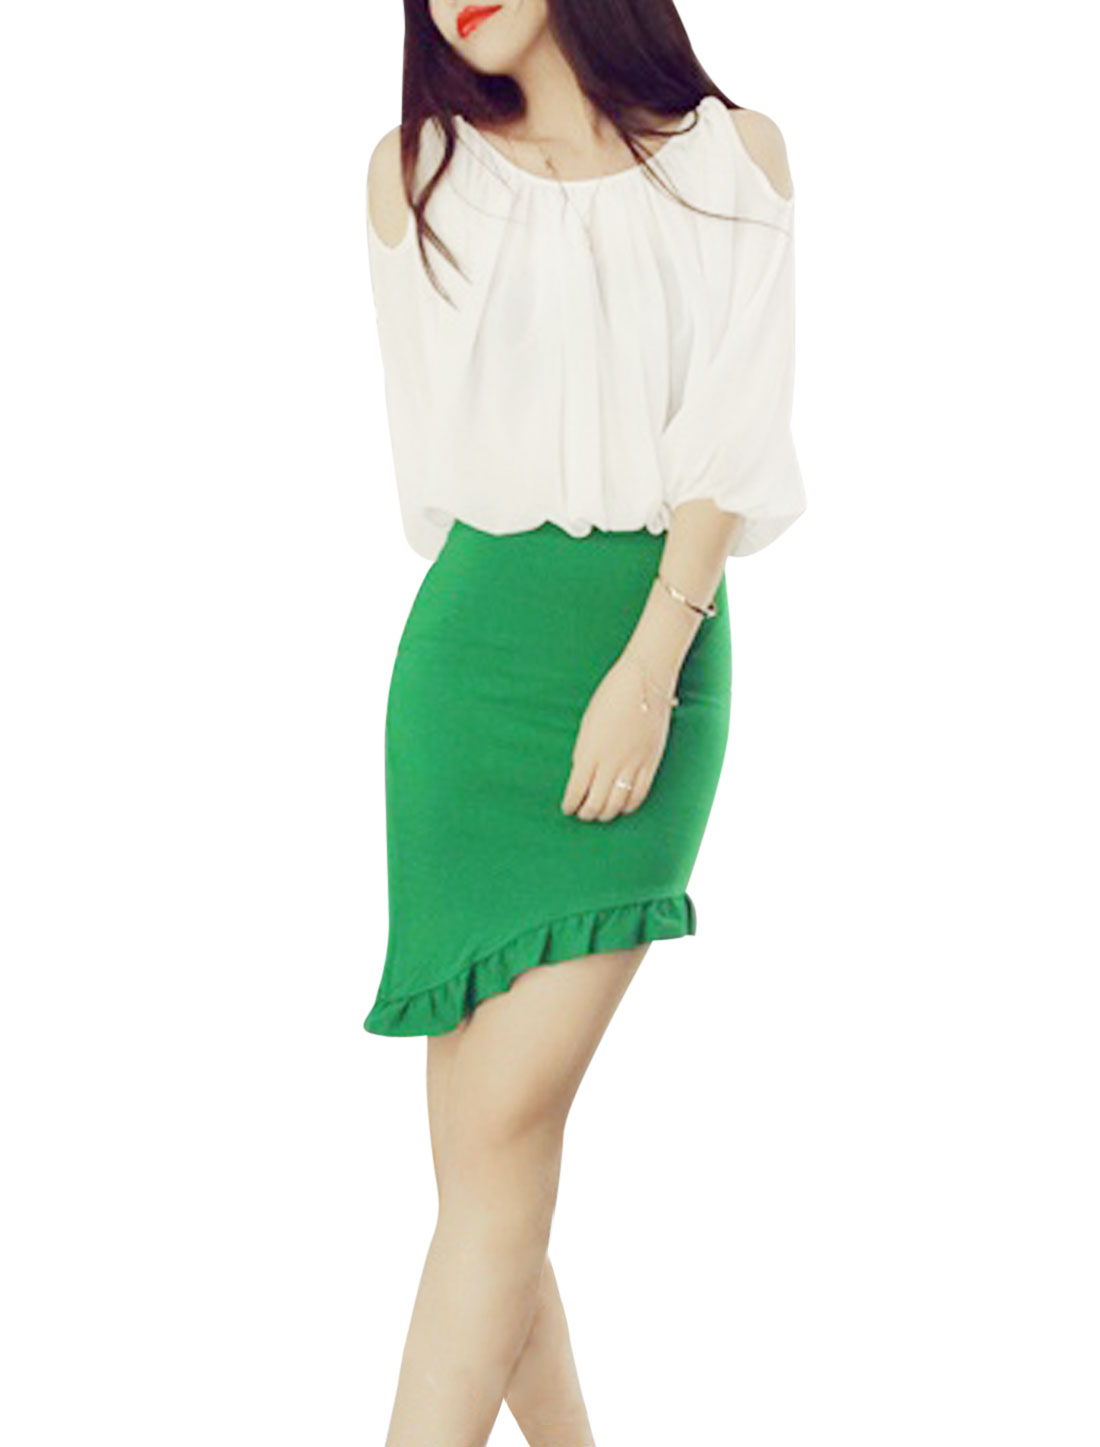 Lady Cut Out Shoulder Casual White Top w Oblique Flouncing Hem Green Skirt M